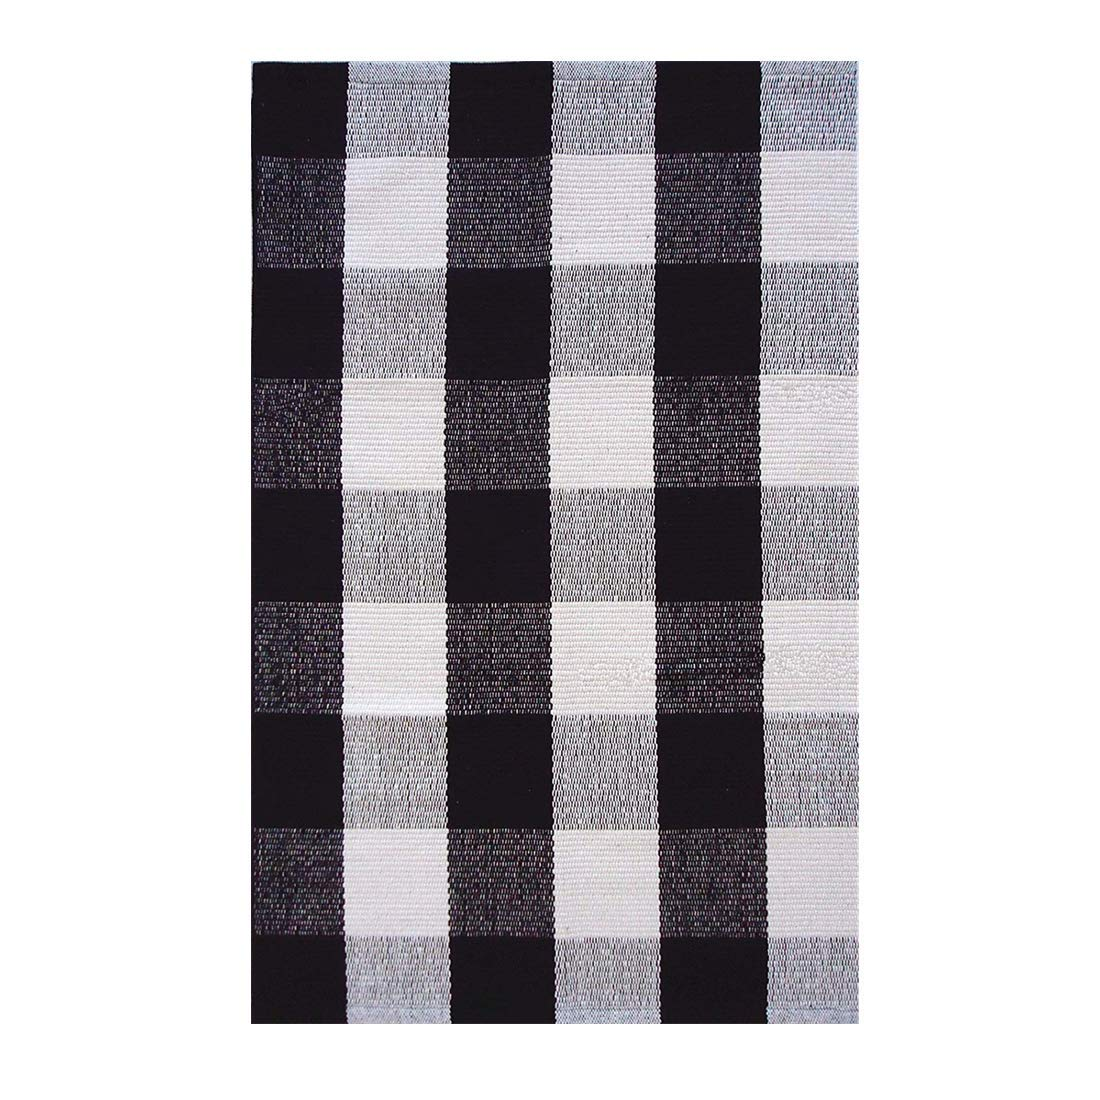 Ablitt Bath Mat Checkered Blue Gingham Bathroom White Light Baby Checked Bathroom Decor Rug 16 x 24